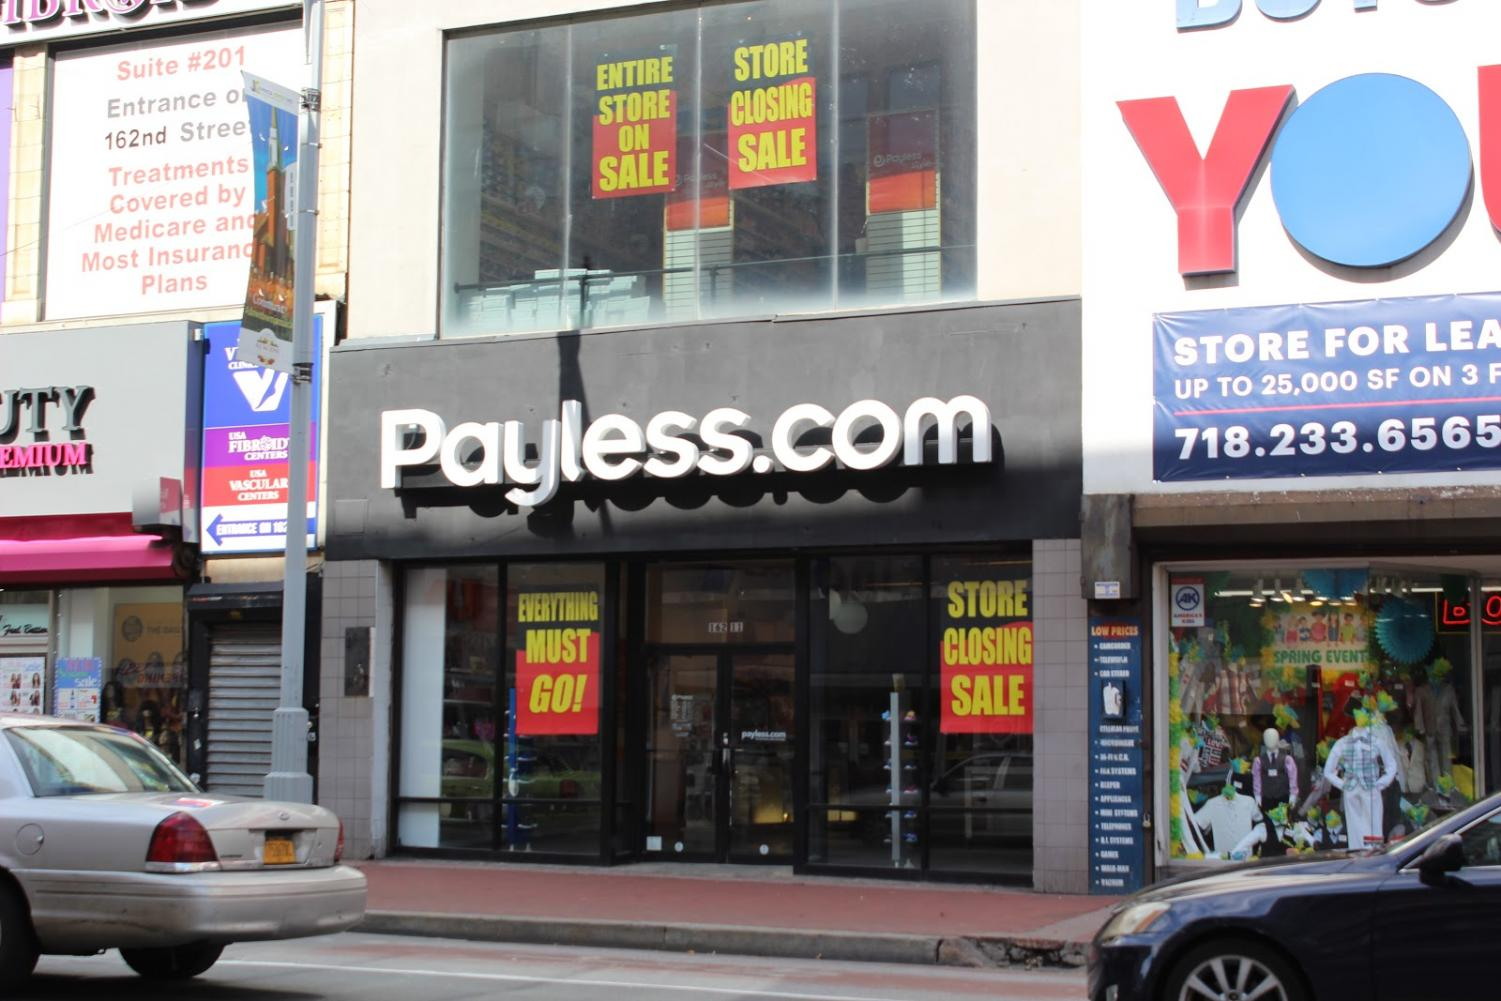 A Payless Shoesource located at 162-11 Jamaica Avenue.